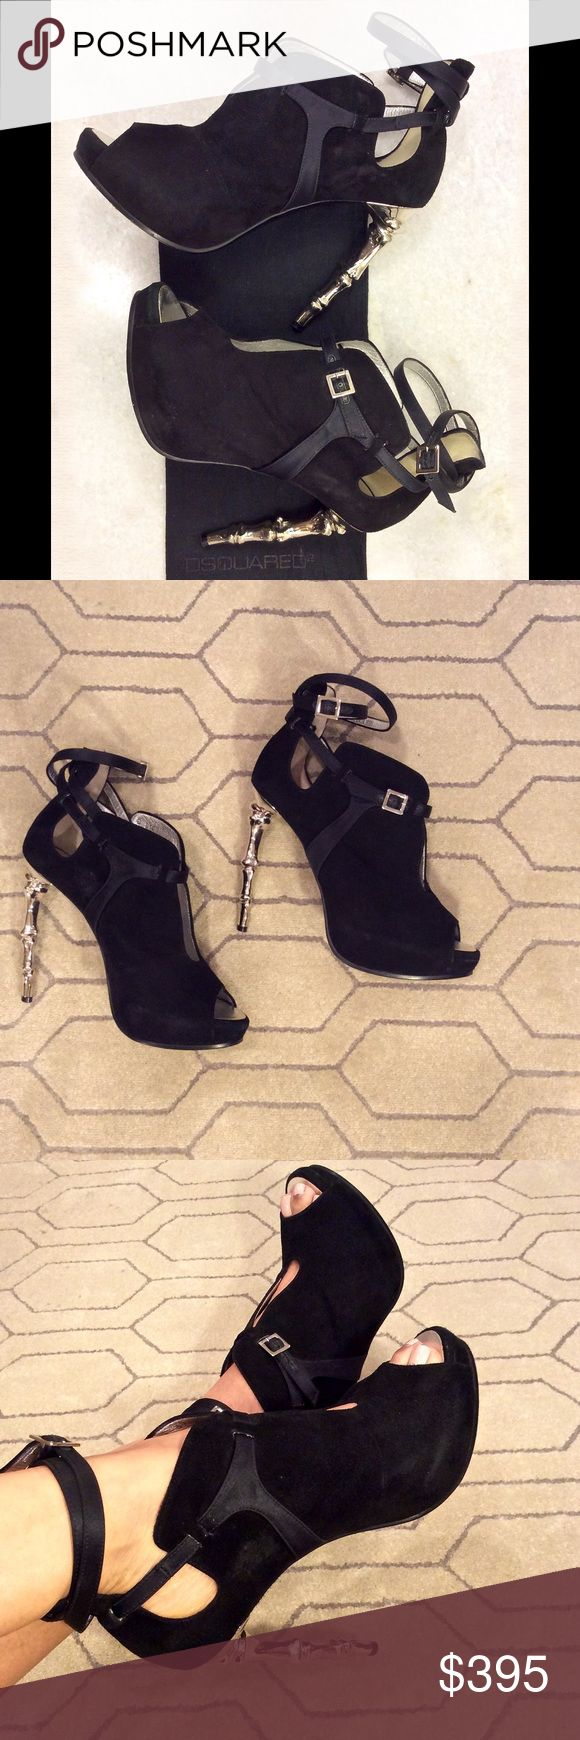 DSQUARED2 Ribcage Suede Ankle Bootie SUMMER SALE!!! 🎉🎉🎉 Stunning, black suede and leather strappy ankle booties with silver rib cage heels. Built-in platform approx. 3/4 inches, heels 4.5 inches. Straps adjusts at ankles and middle for comfortable fit. Size 39,made in Italy, B014 V10220. I purchased these in Milan, only wore a few times. Awesome condition! Dust bag included. VERY RARE! Dsquared2 Shoes Ankle Boots & Booties